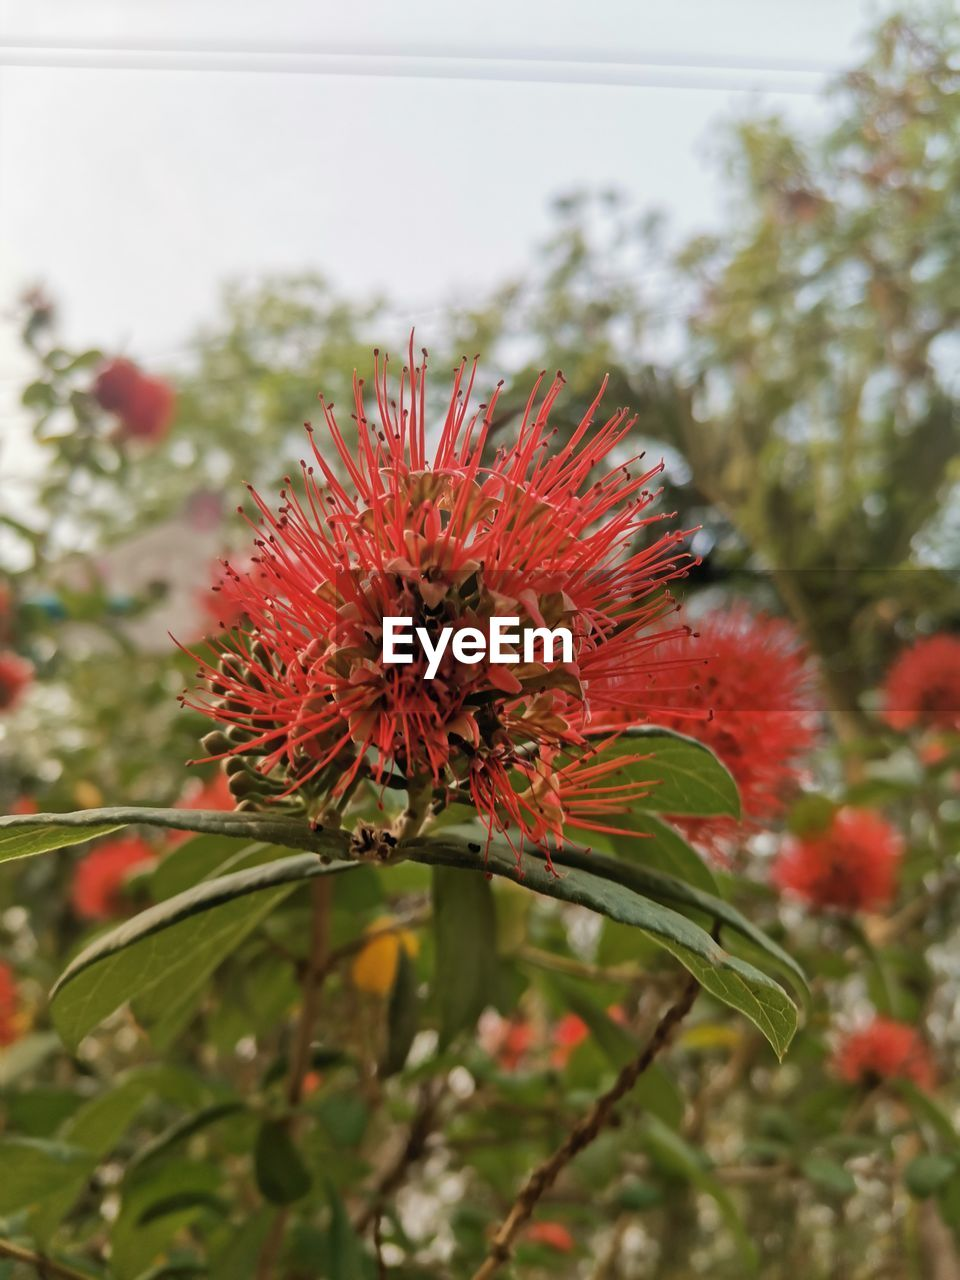 CLOSE-UP OF RED FLOWER AGAINST BLURRED BACKGROUND